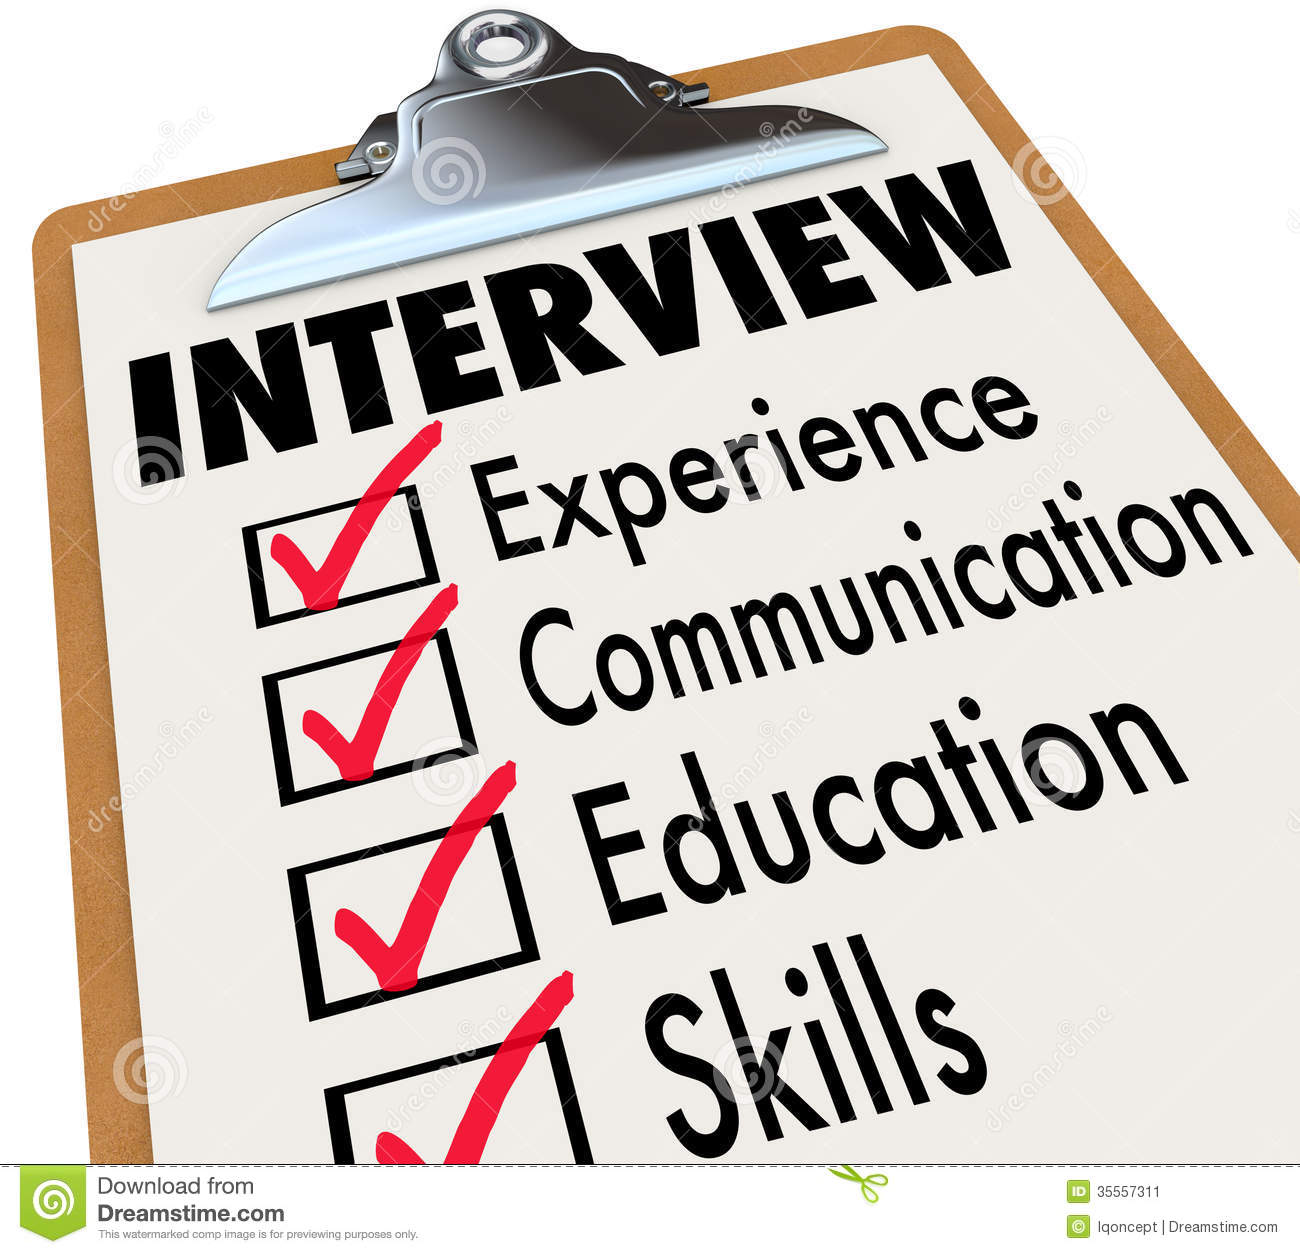 interview-checklist-job-candidate-requirements-qualifications-must-possess-clipboard-including-experience-communication-35557311